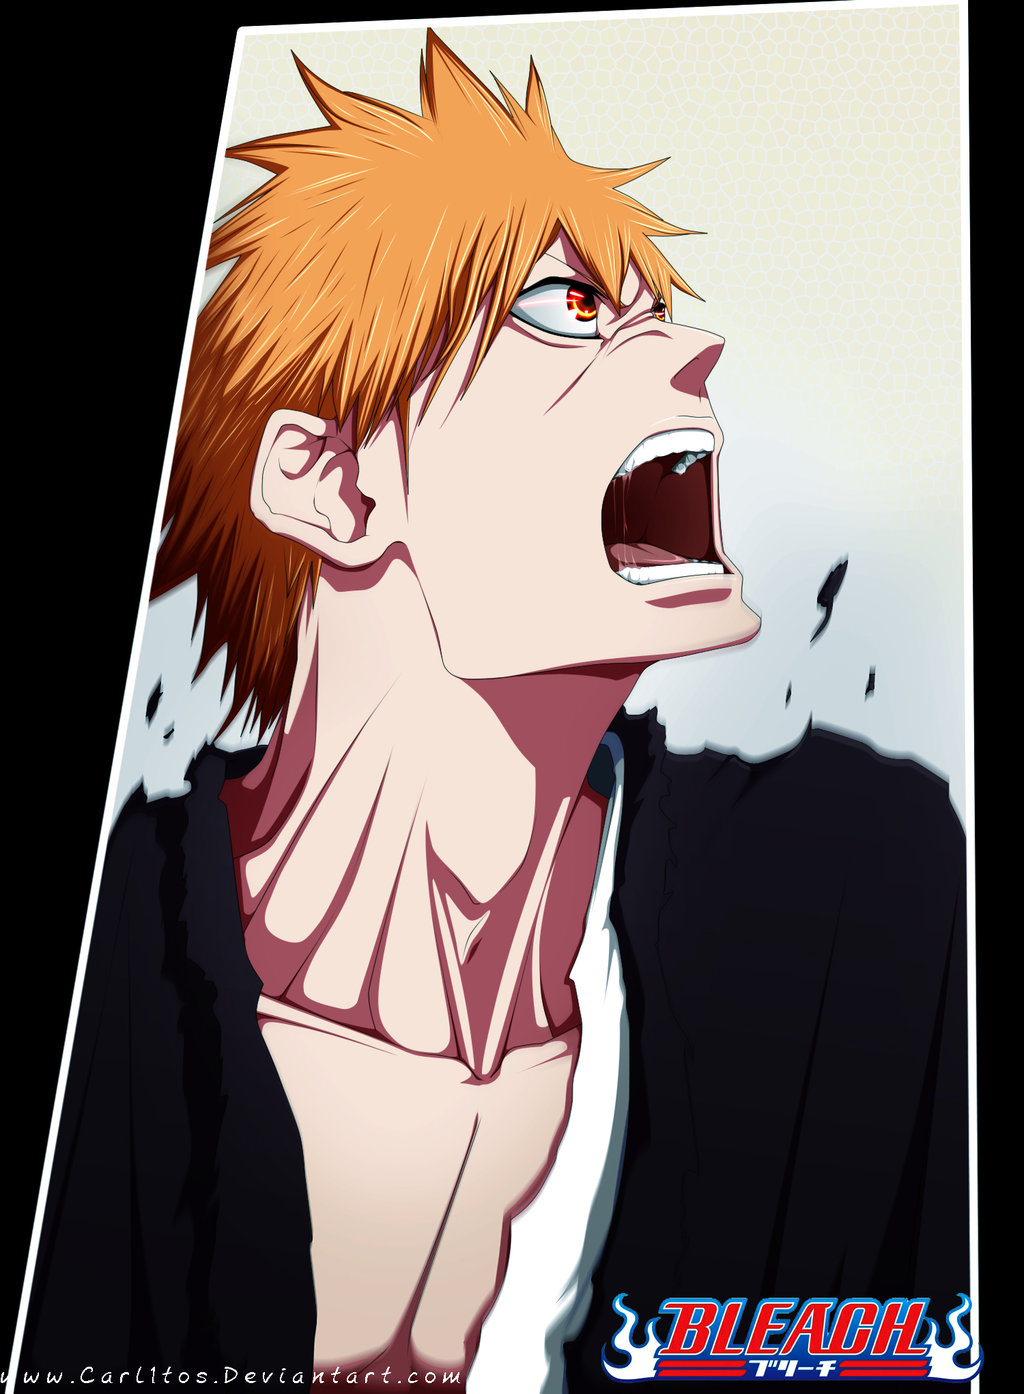 Characters/Shinigami | Bleach Wiki | FANDOM powered by Wikia